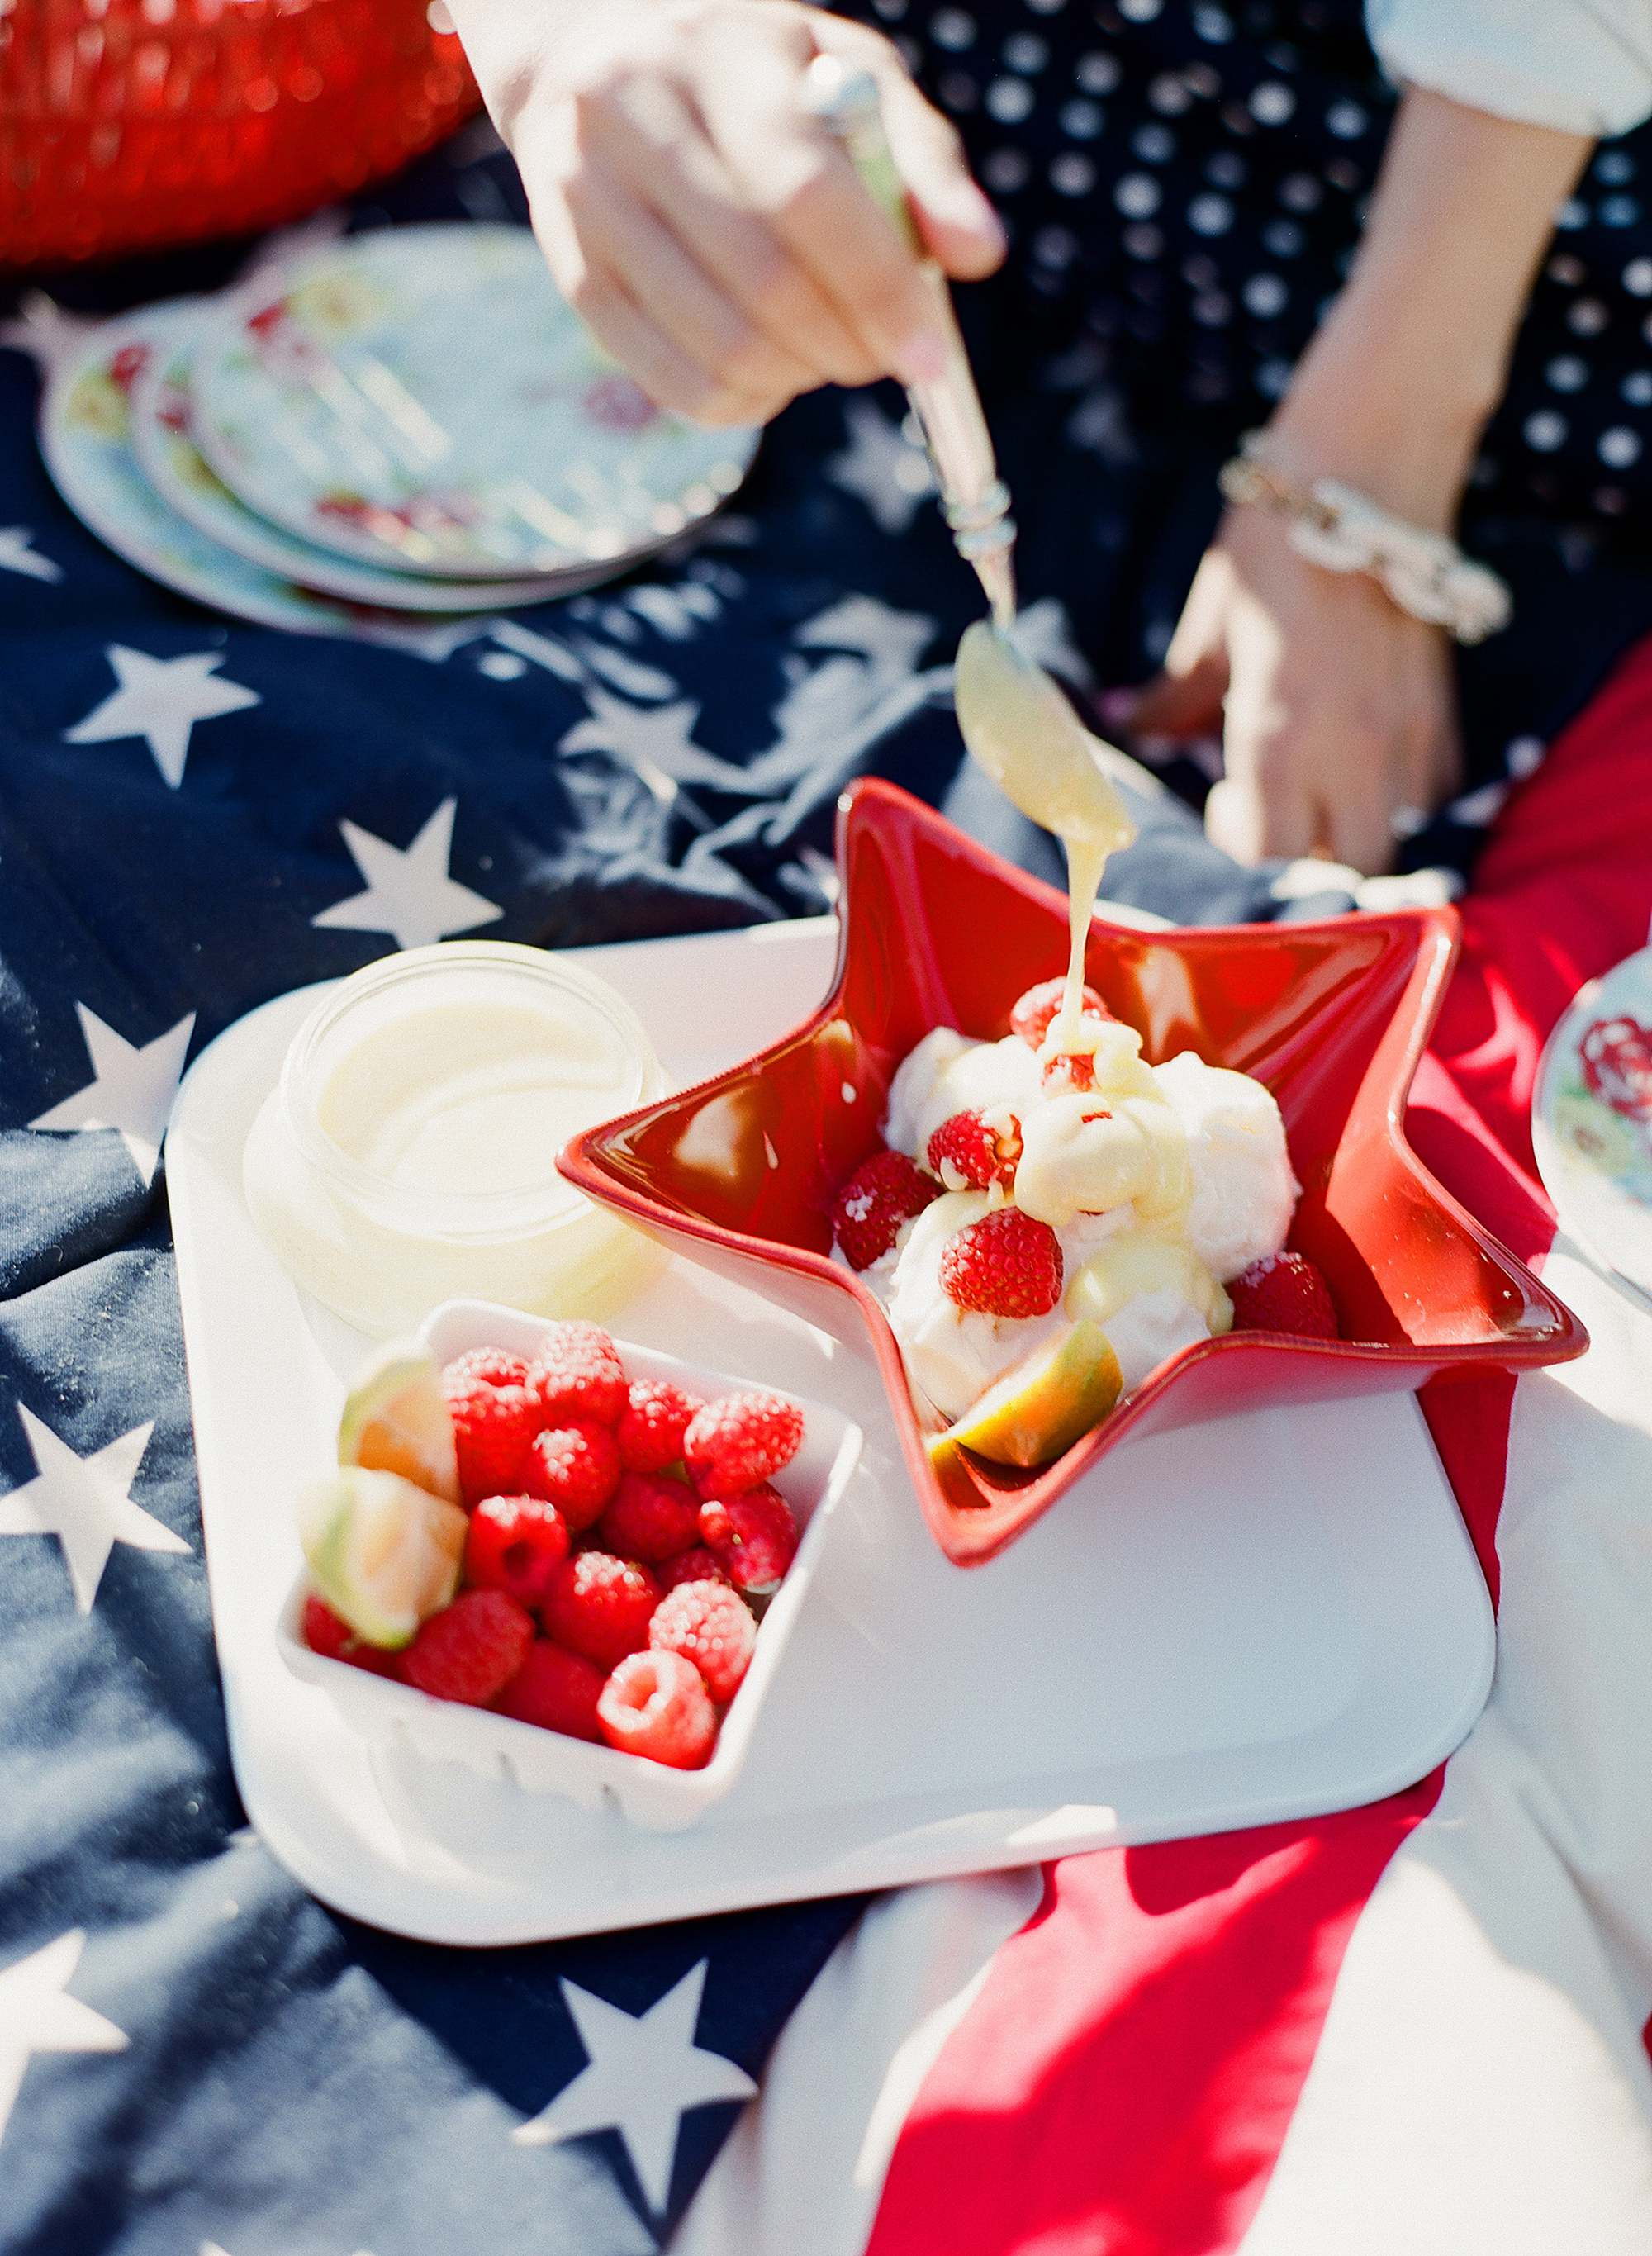 lemon curd Fourth of July Memorial Day weekend presidents day Veterans Day themed picnic patriot picnic home decor tables cape - American flag blanket stars and stripes